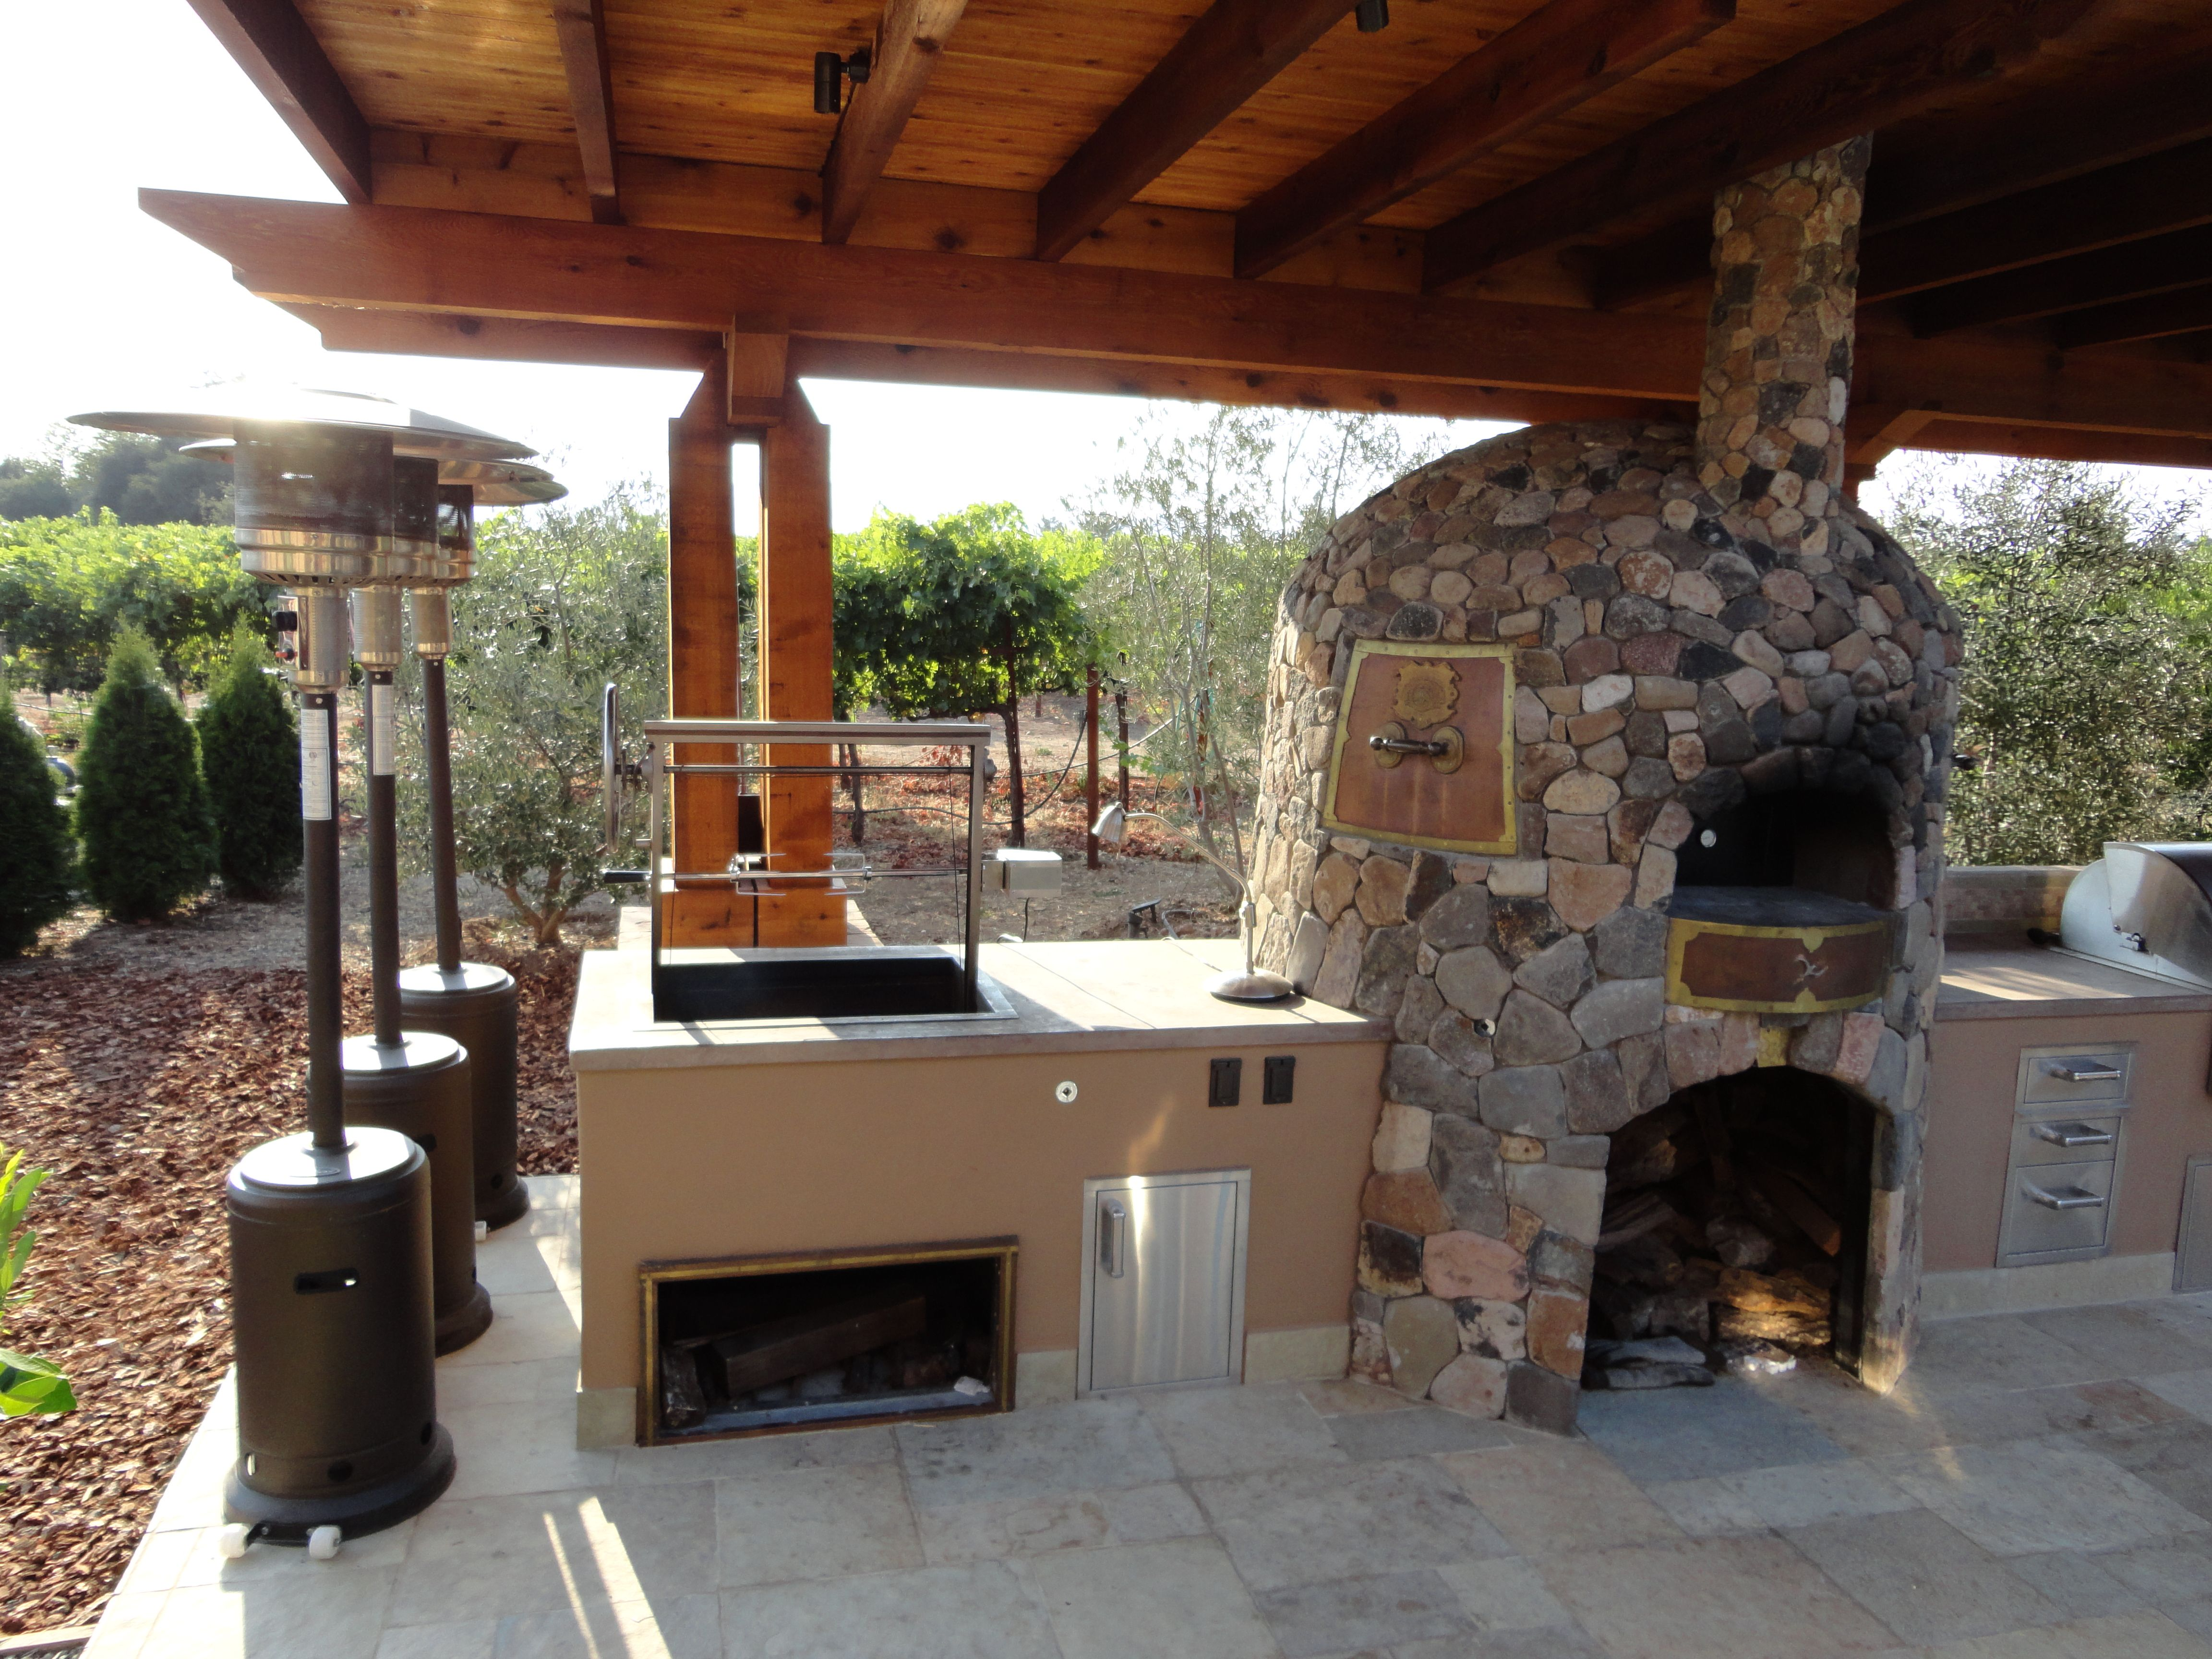 Outdoor Kitchen Designs With Pizza Oven Image Kitchen Design